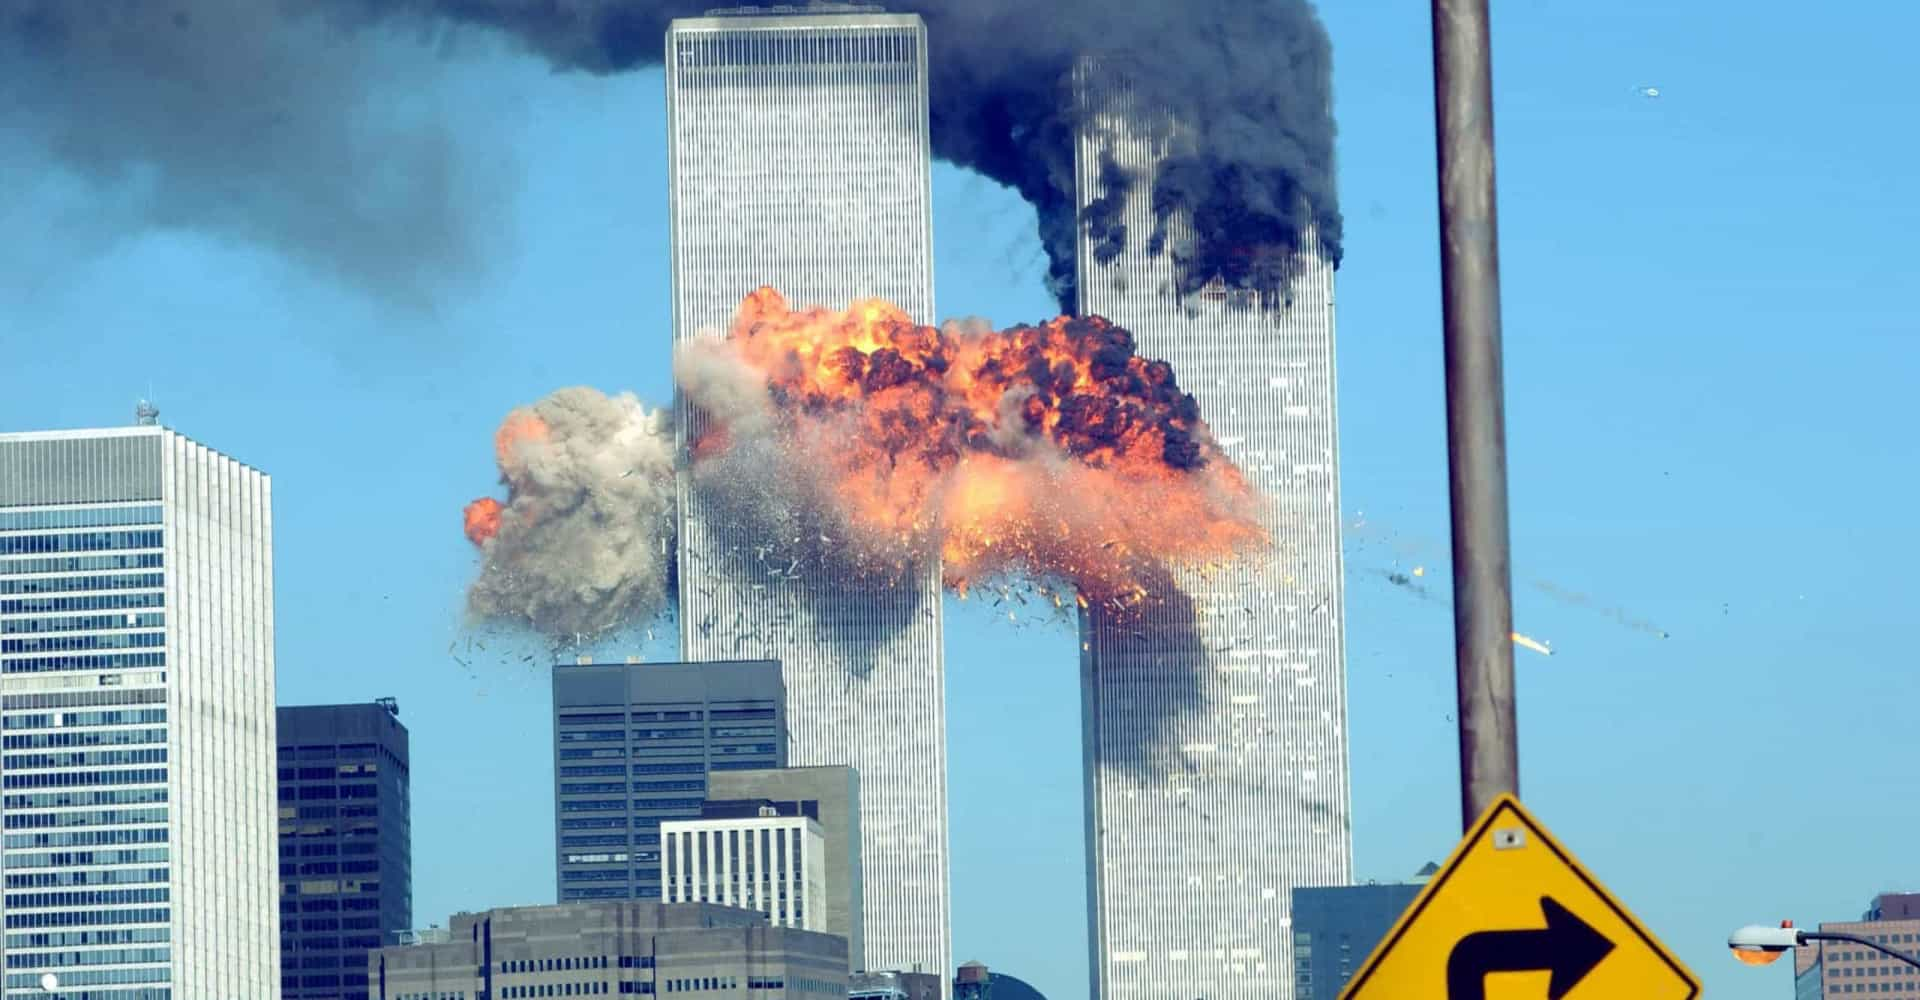 Tourist hubs targeted by terrorists since 9/11